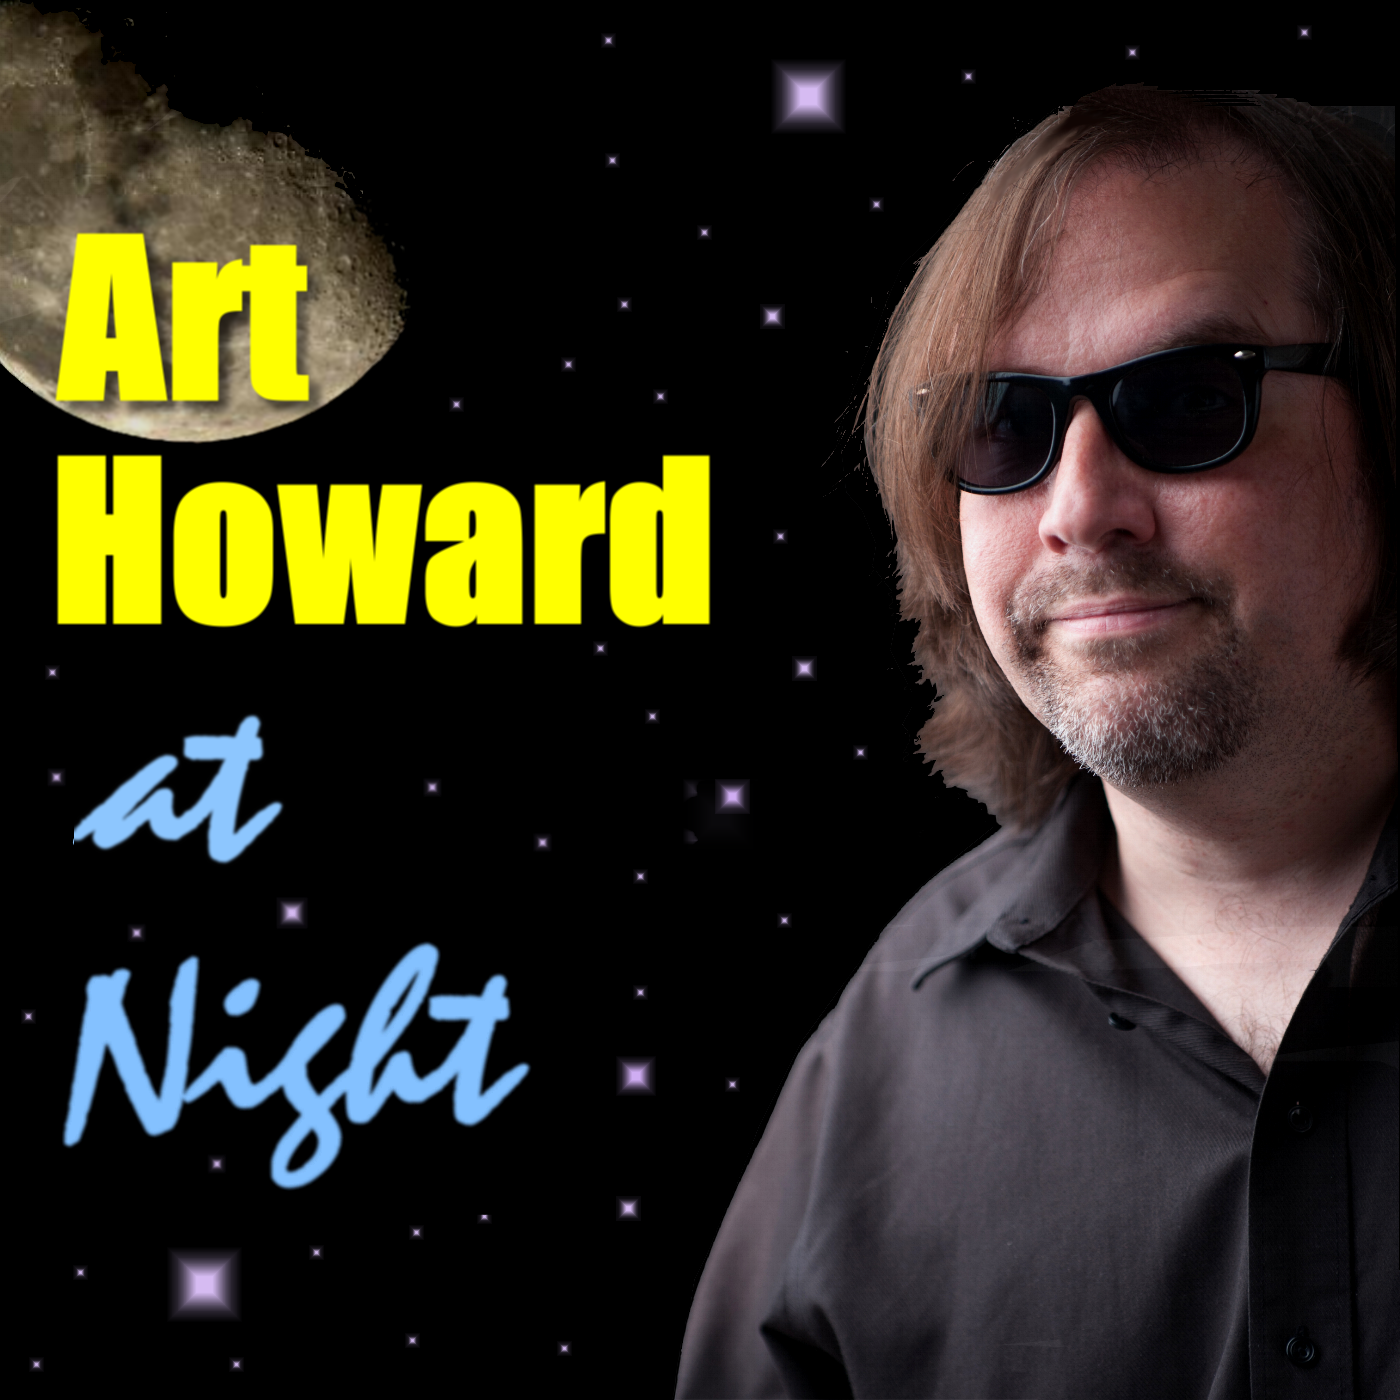 Art Howard at Night